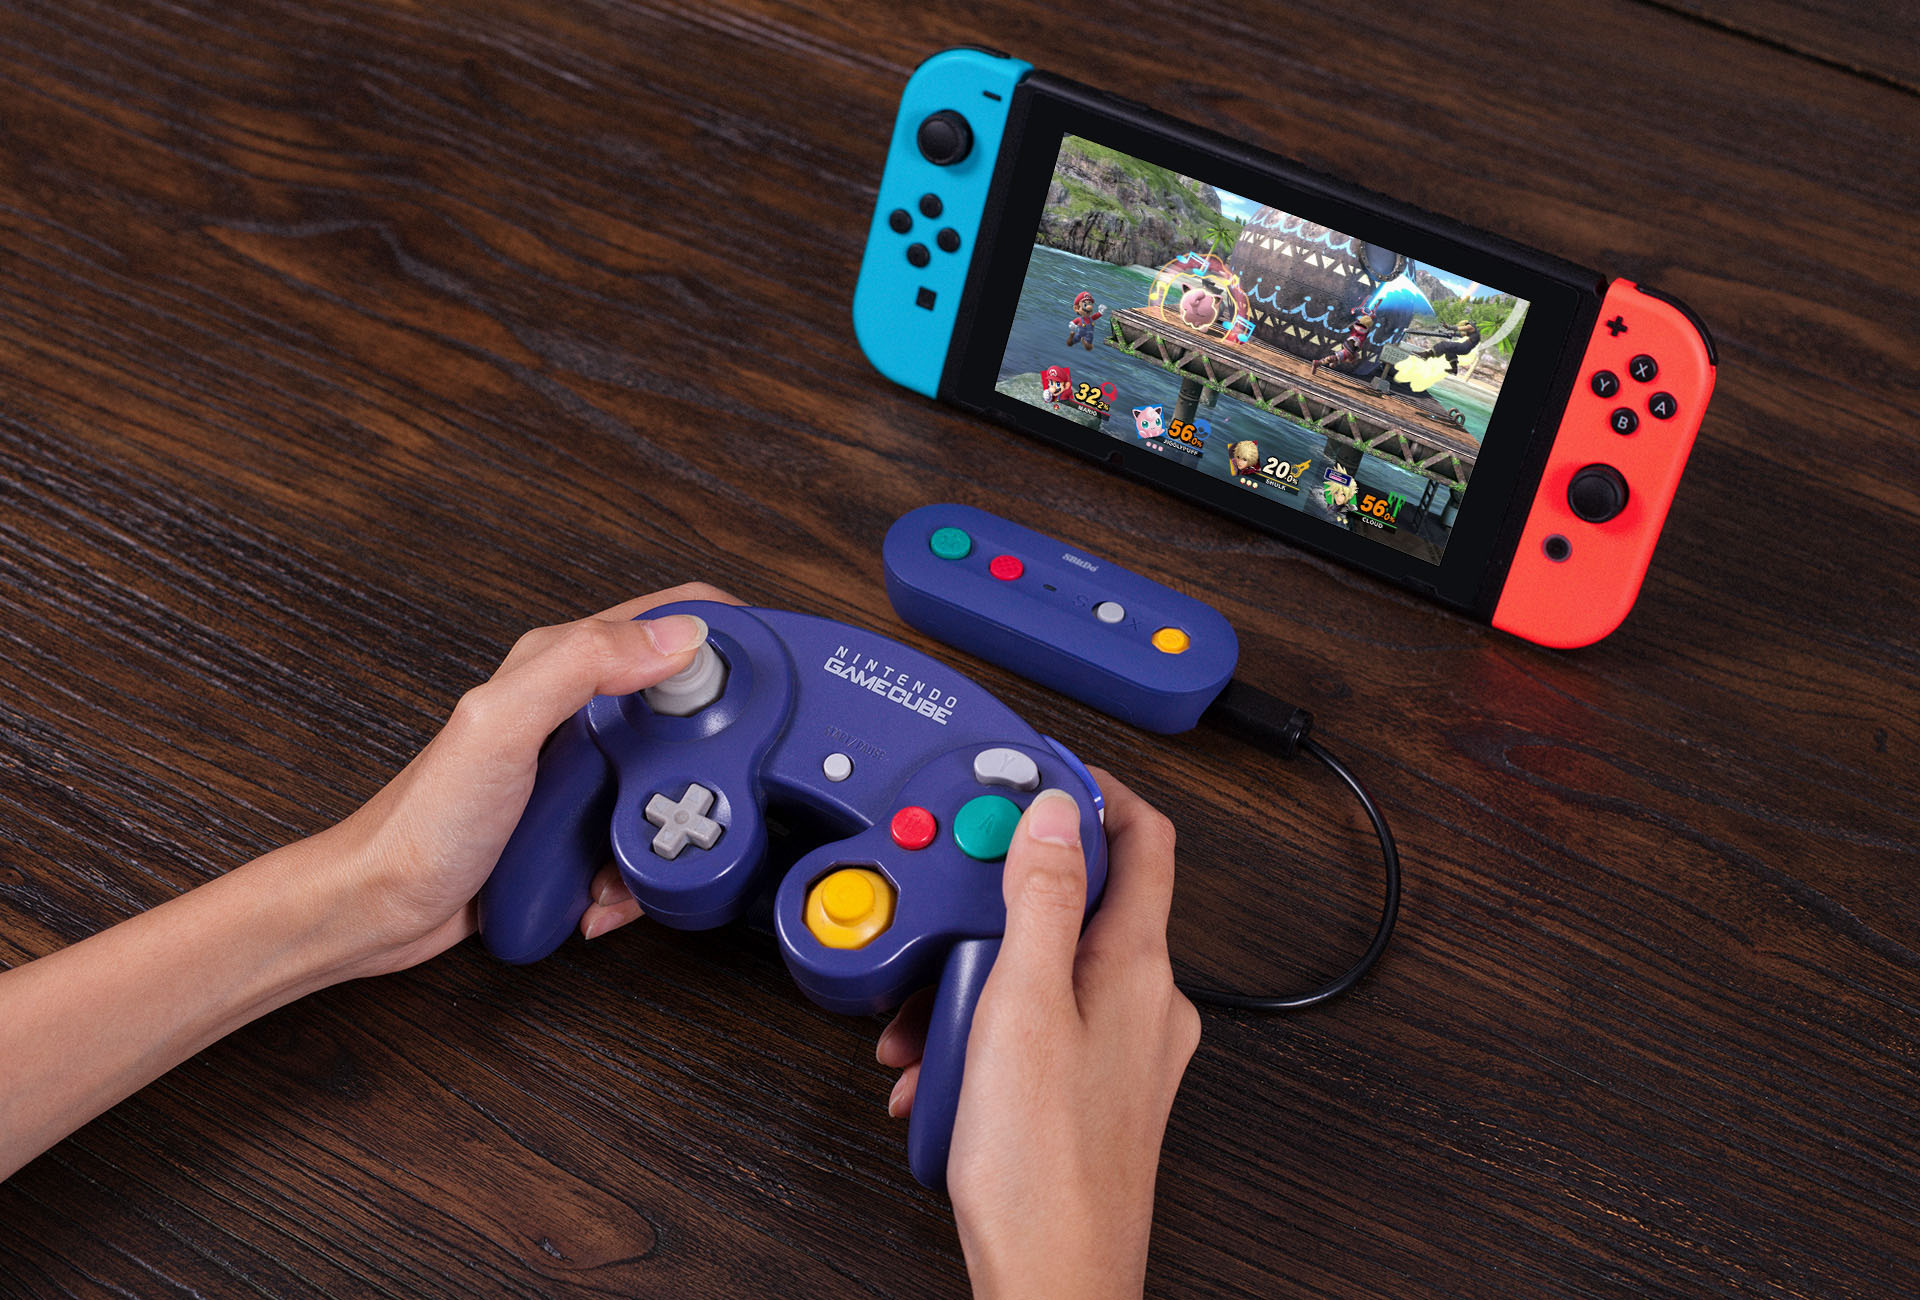 gbros adapter to use gamecube controller on switch